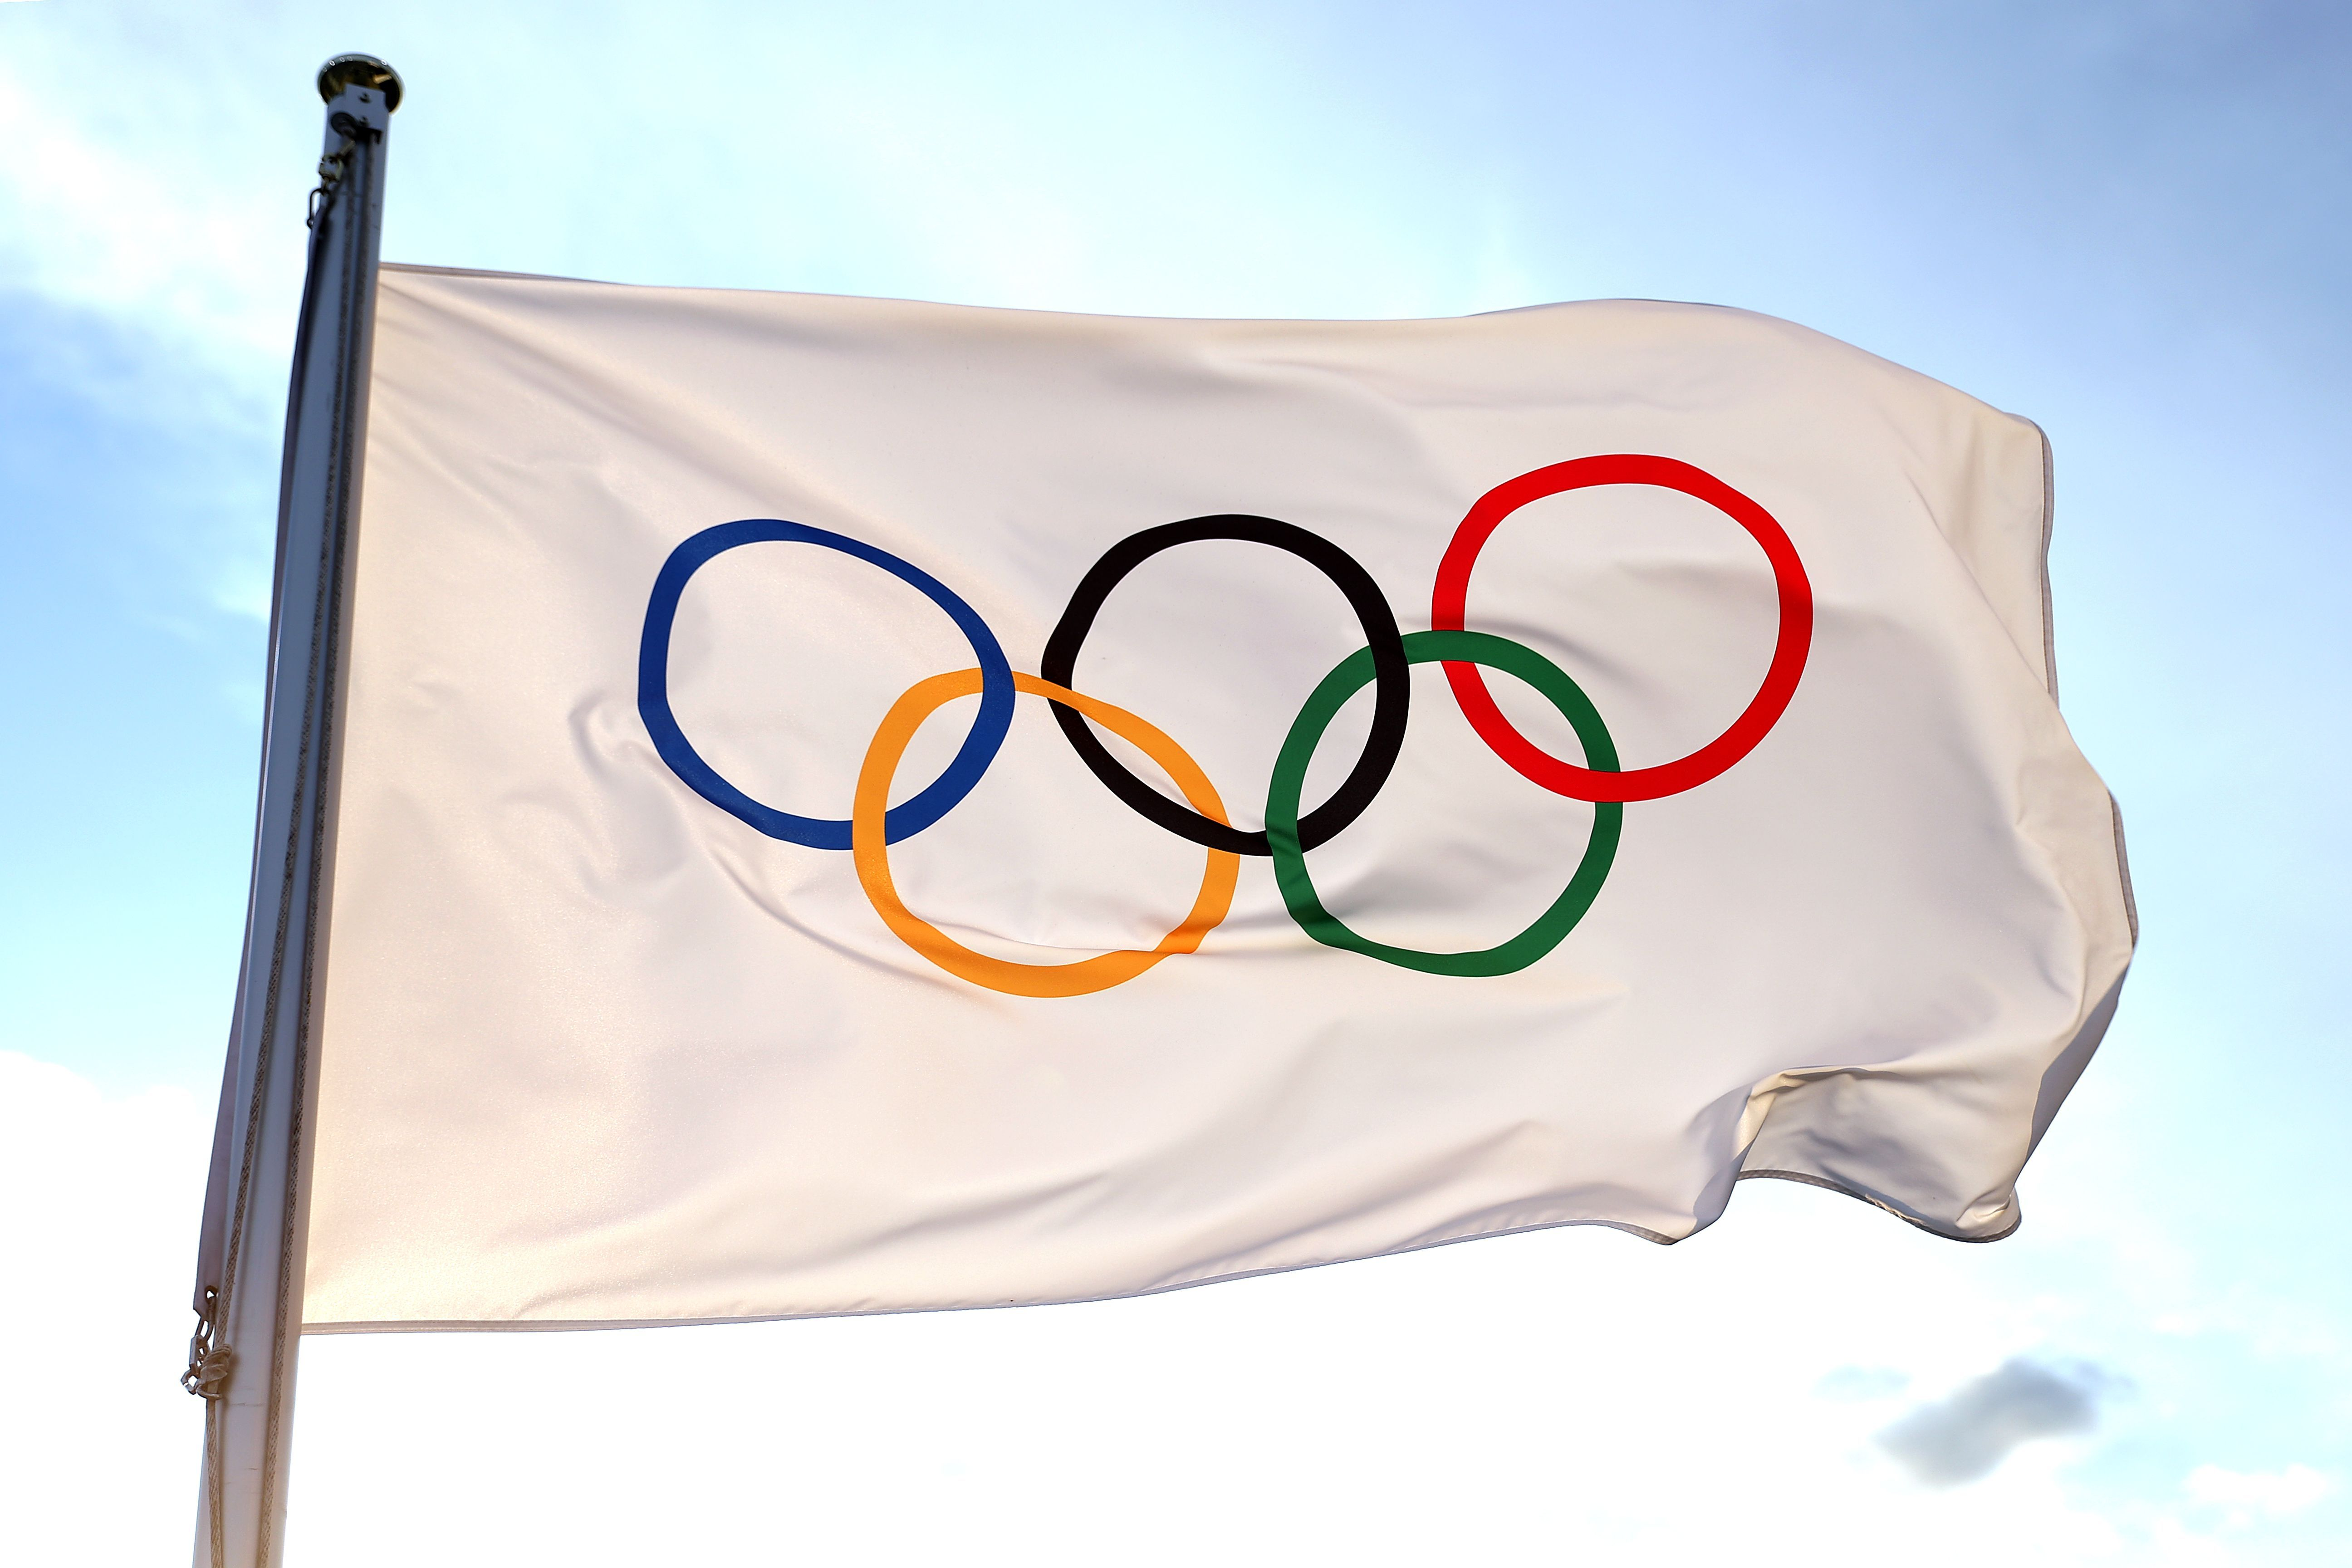 an Olympic flag: the Olympic logo of five colored rings on a white background